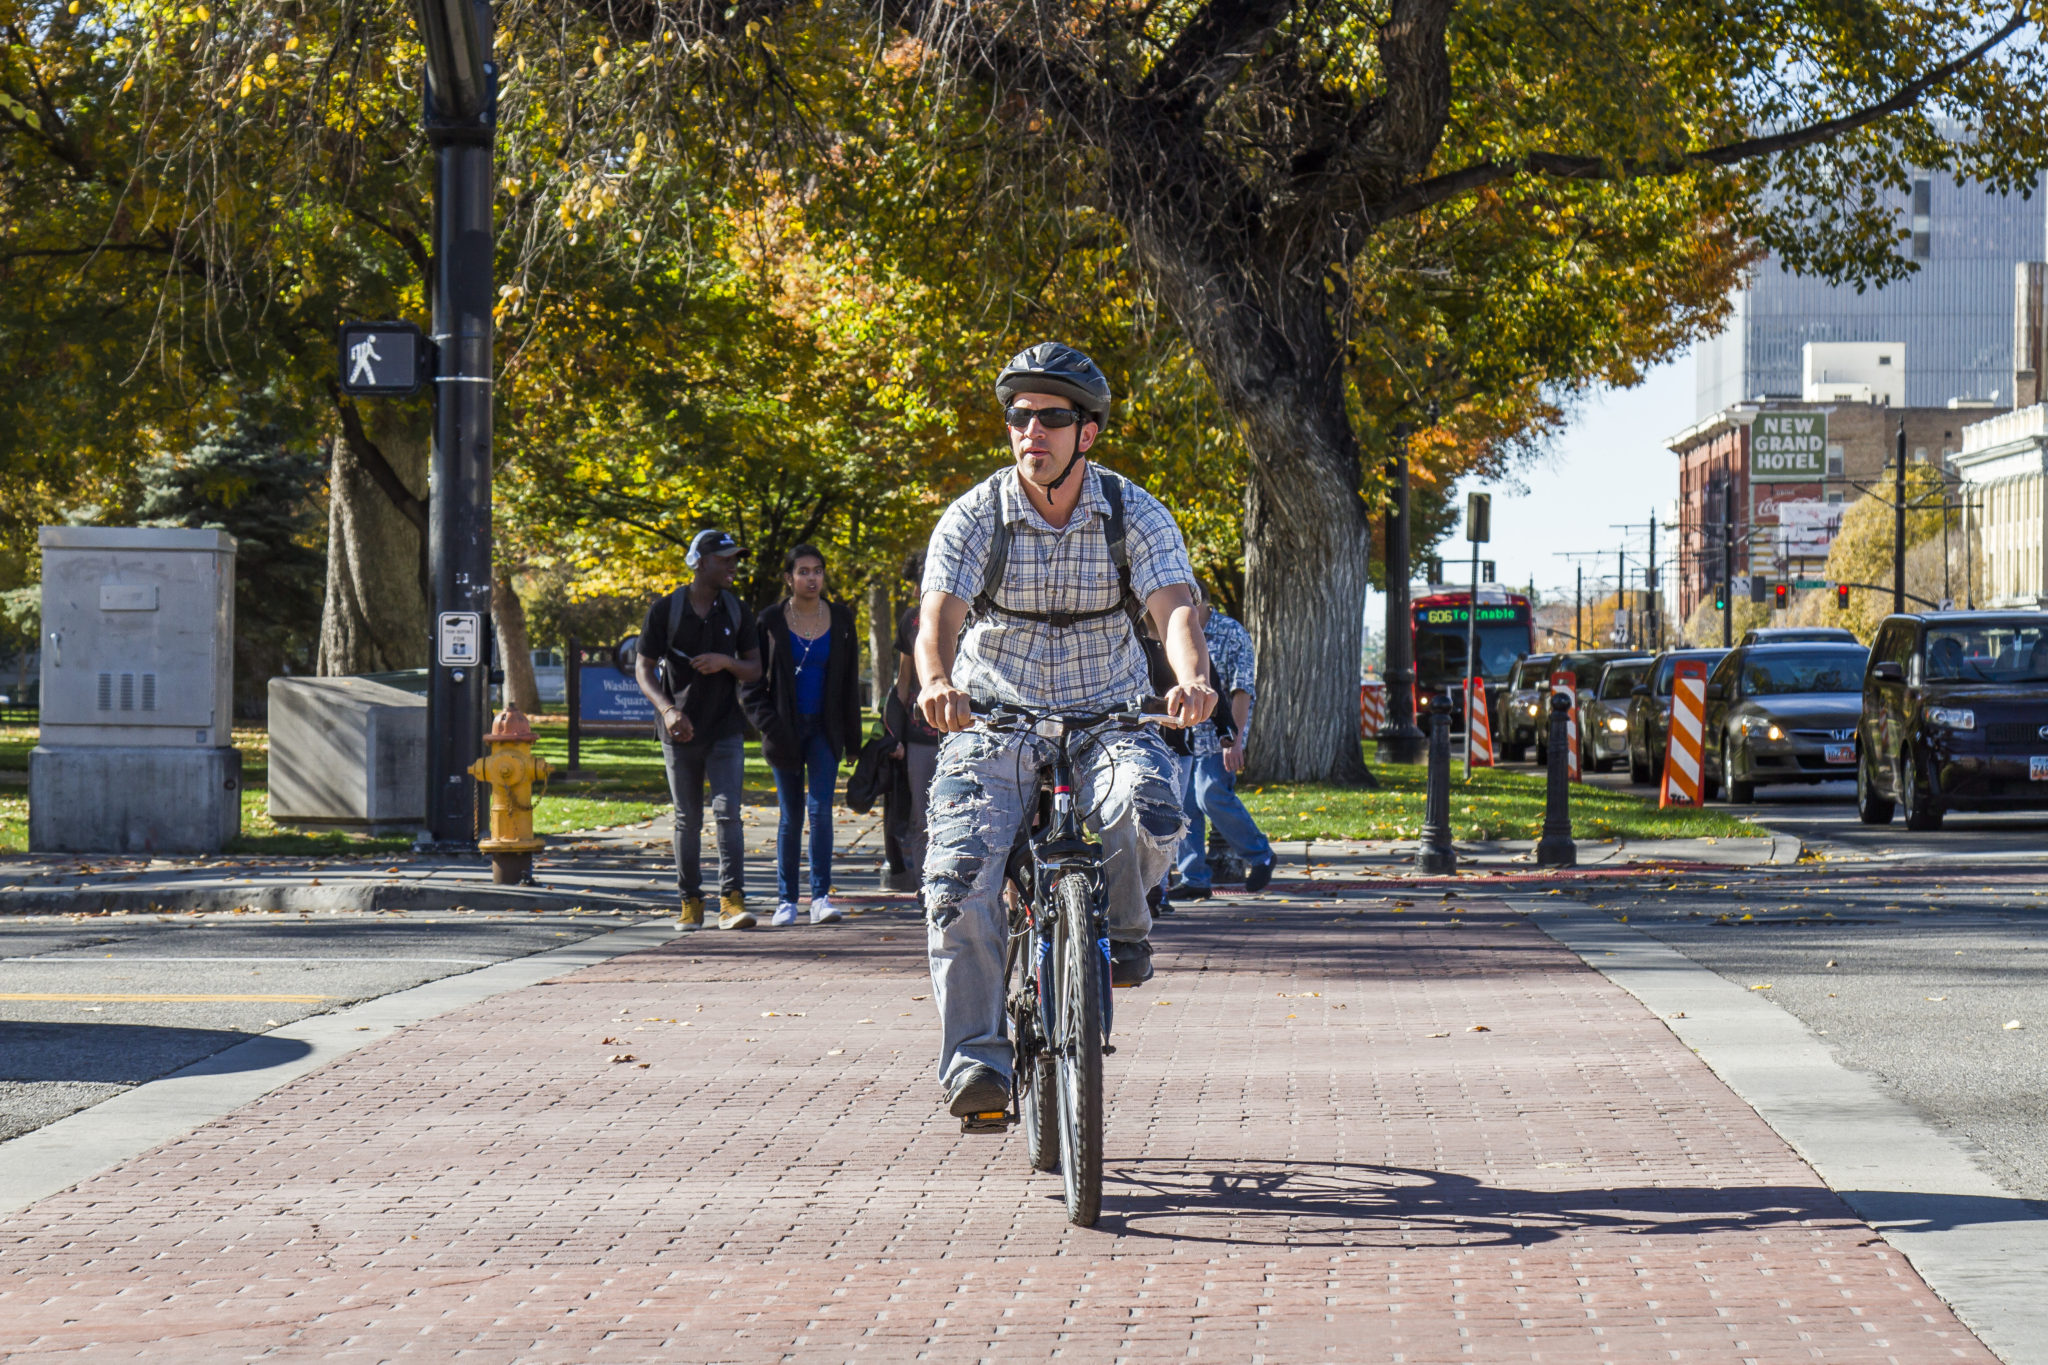 Bicyclist And Pedestrians Utilize Crosswalk In Salt Lake City.